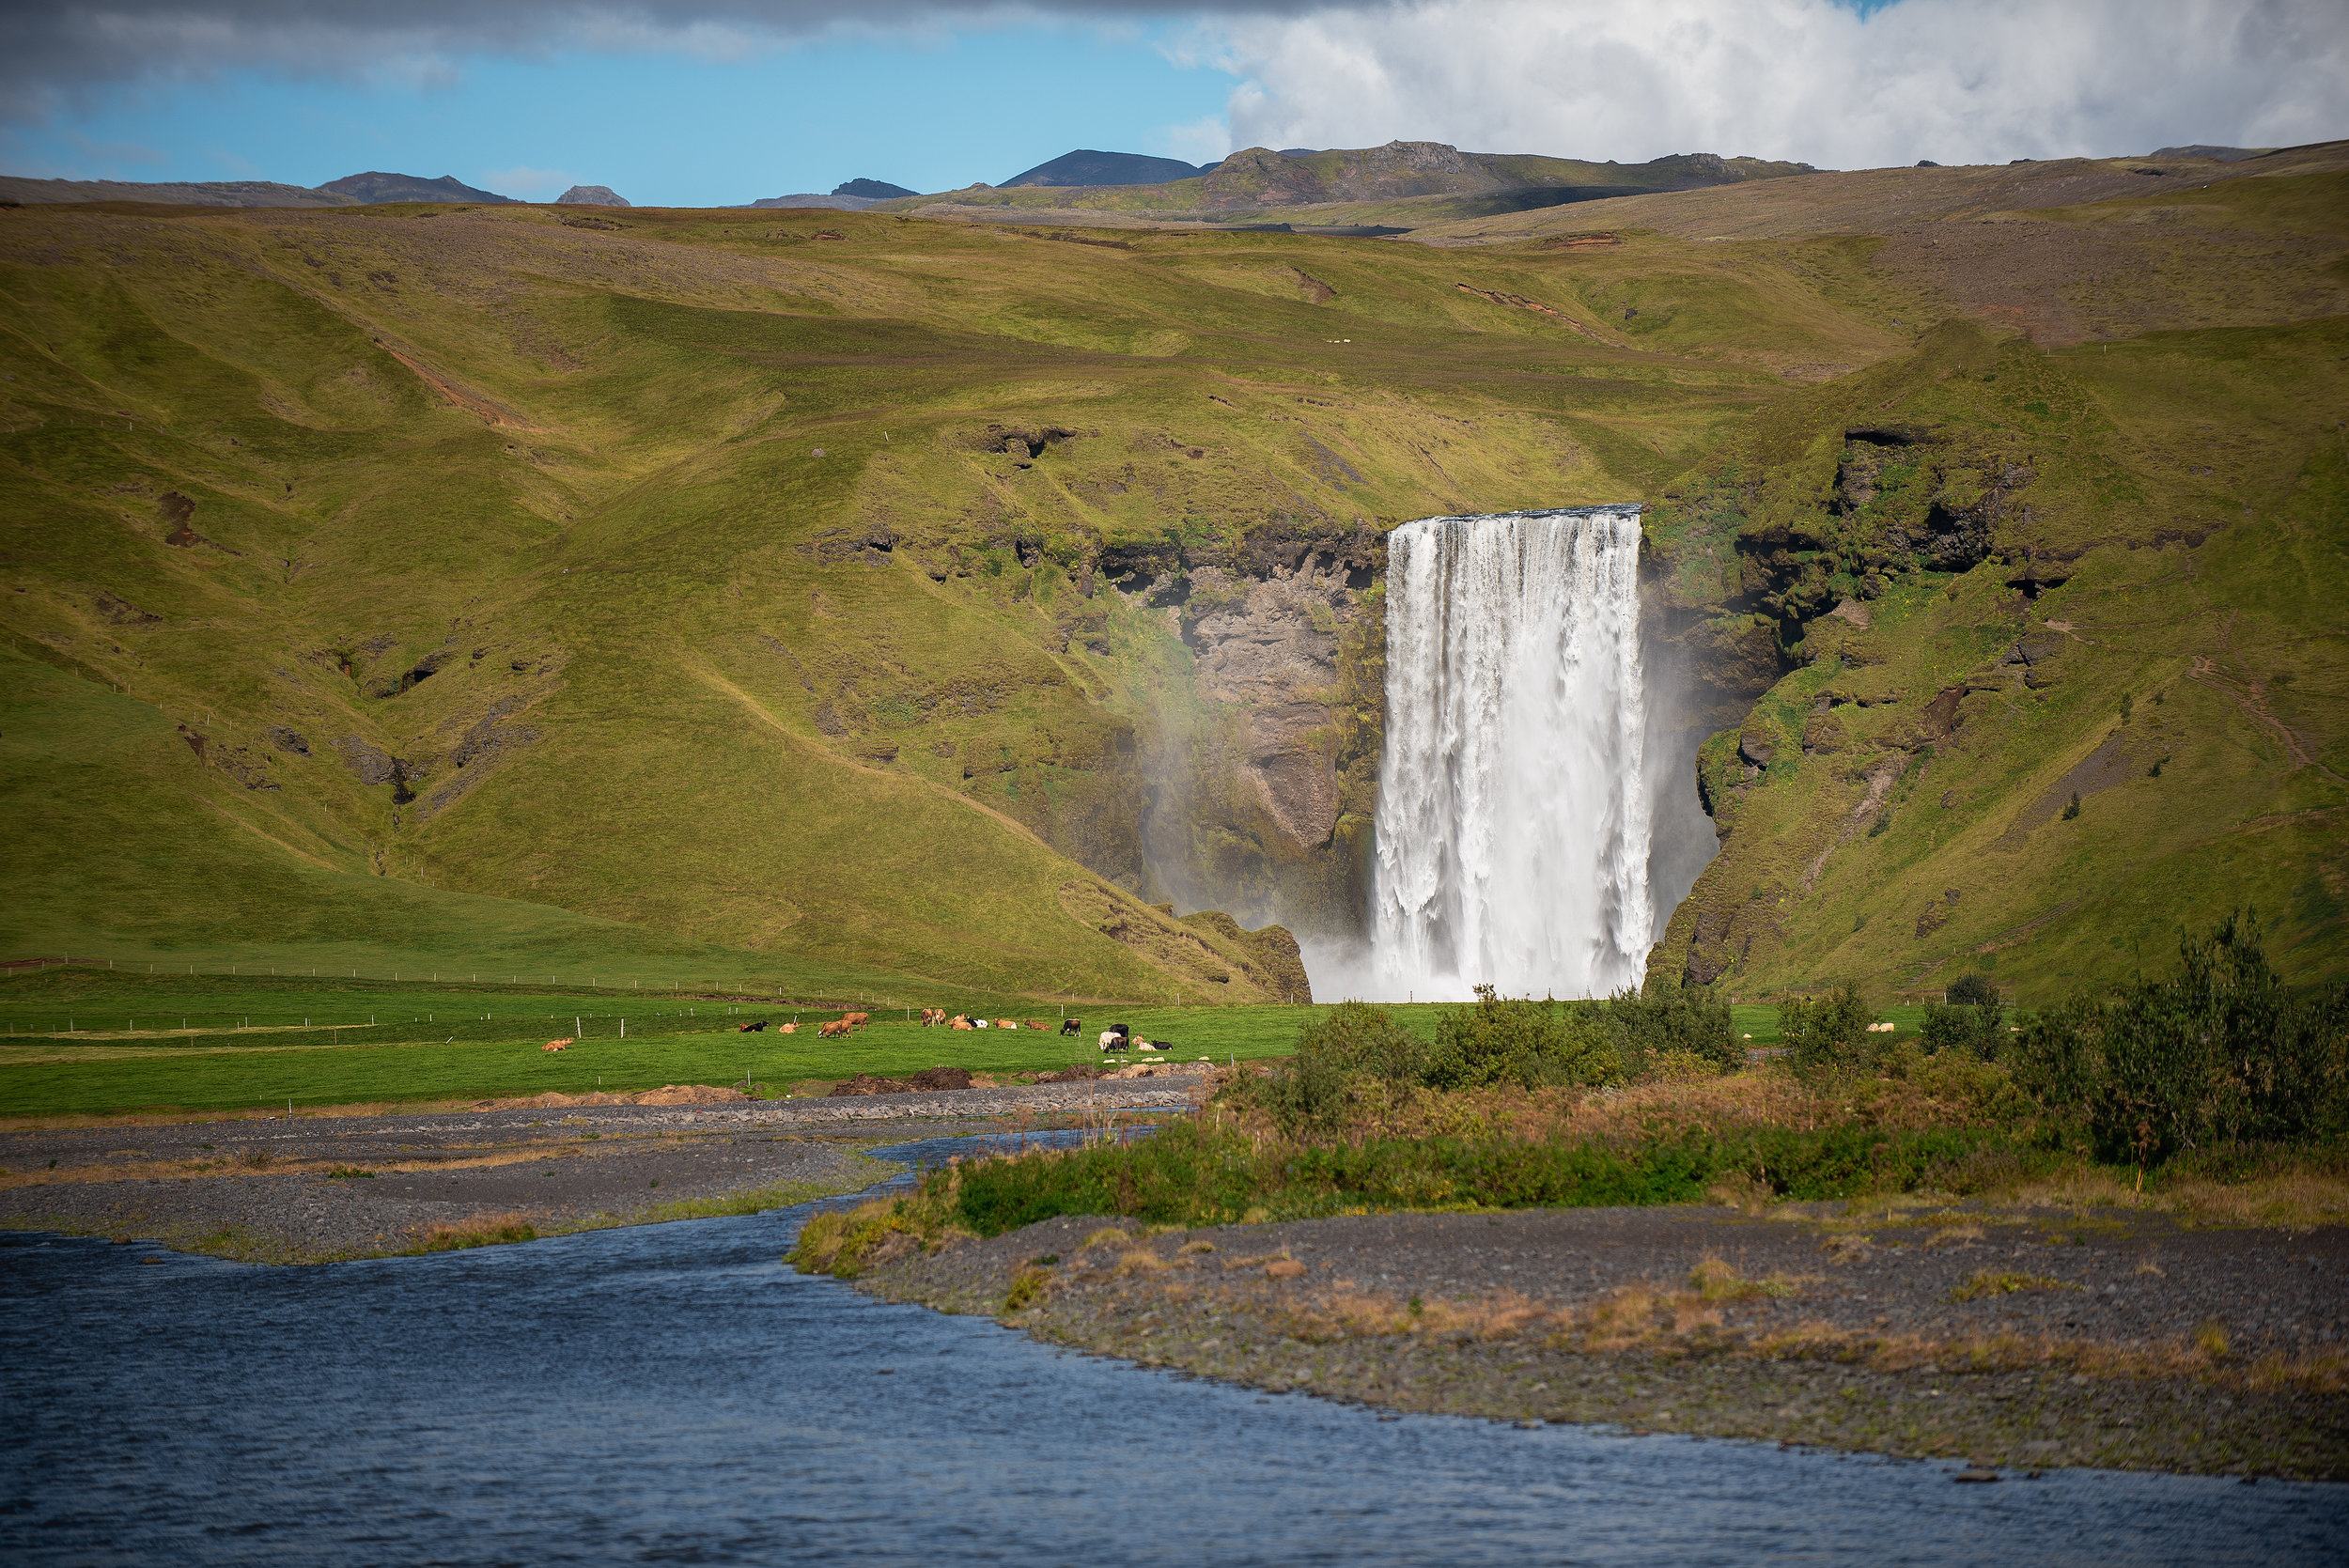 Skogafoss - the water giant from far... spent my first night in the camper van here at the base of this monster as it sang me to sleep.